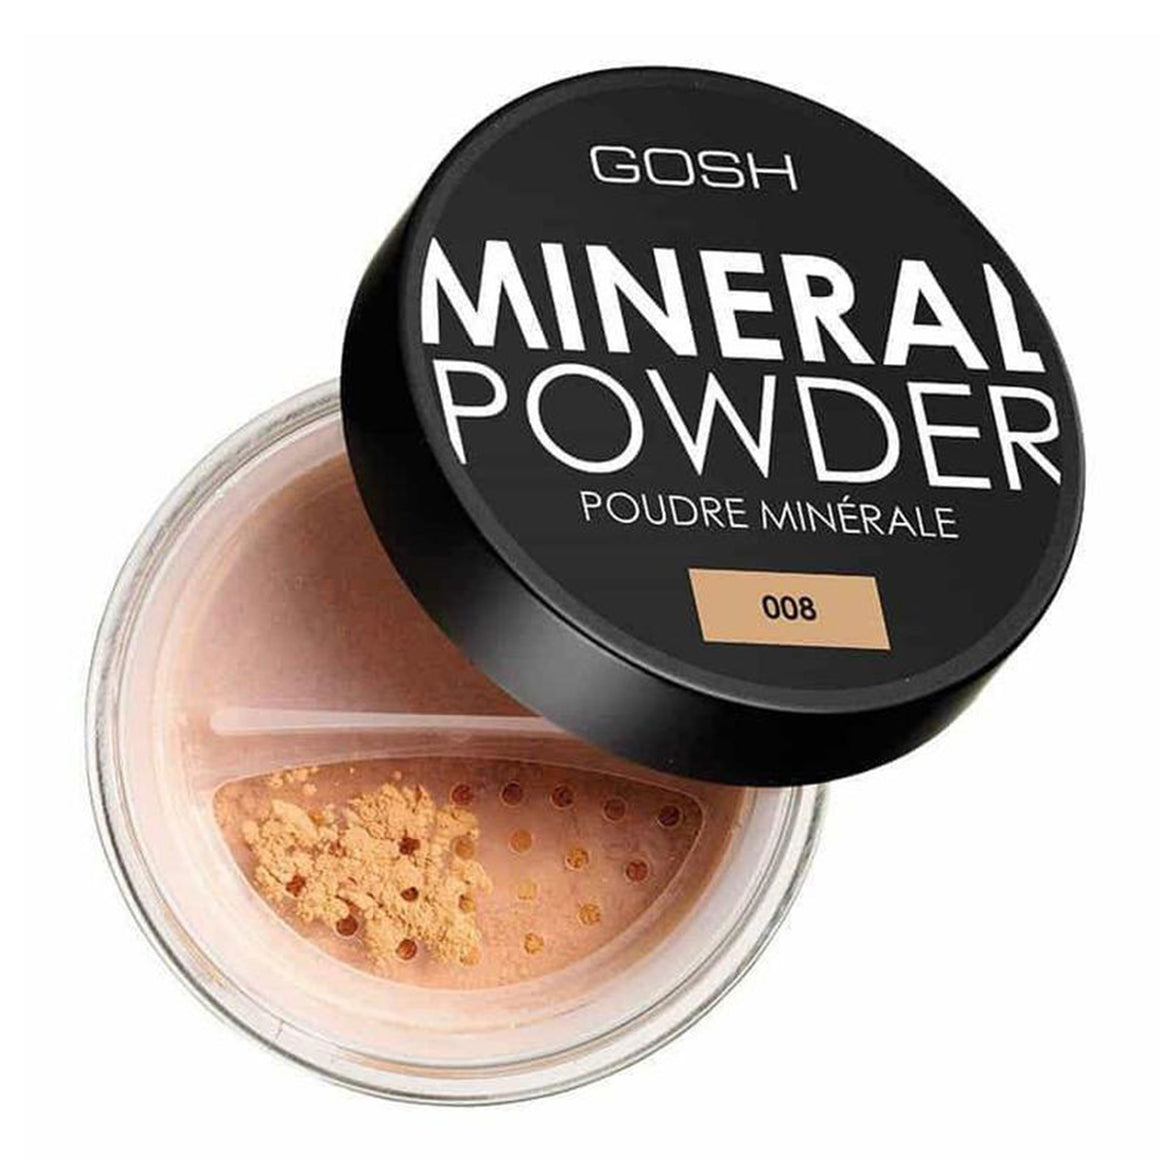 GOSH Mineral Powder -008 (Tan)